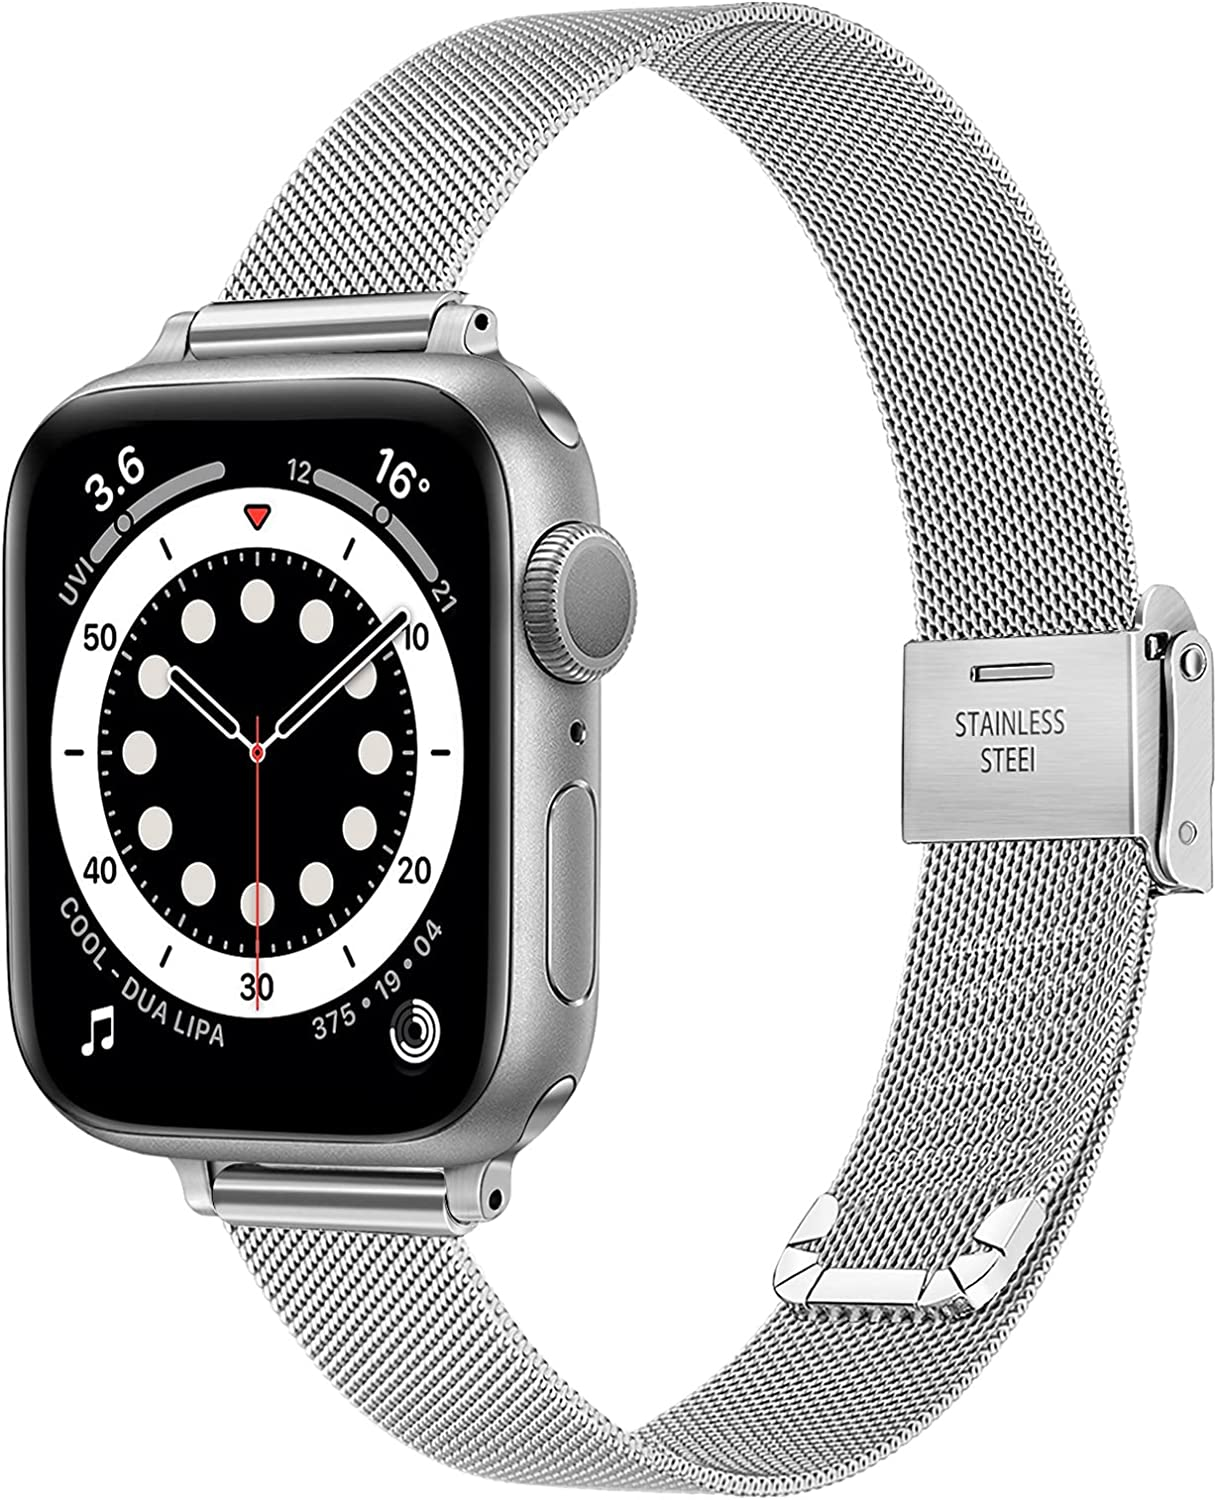 TRUMiRR Slim Band for Apple Watch Series 6 / SE 40mm 38mm Women, Mesh Woven Stainless Steel Watchband Feminine Strap Replacement for iWatch Apple Watch SE Series 6 5 4 3 2 1 40mm 38mm